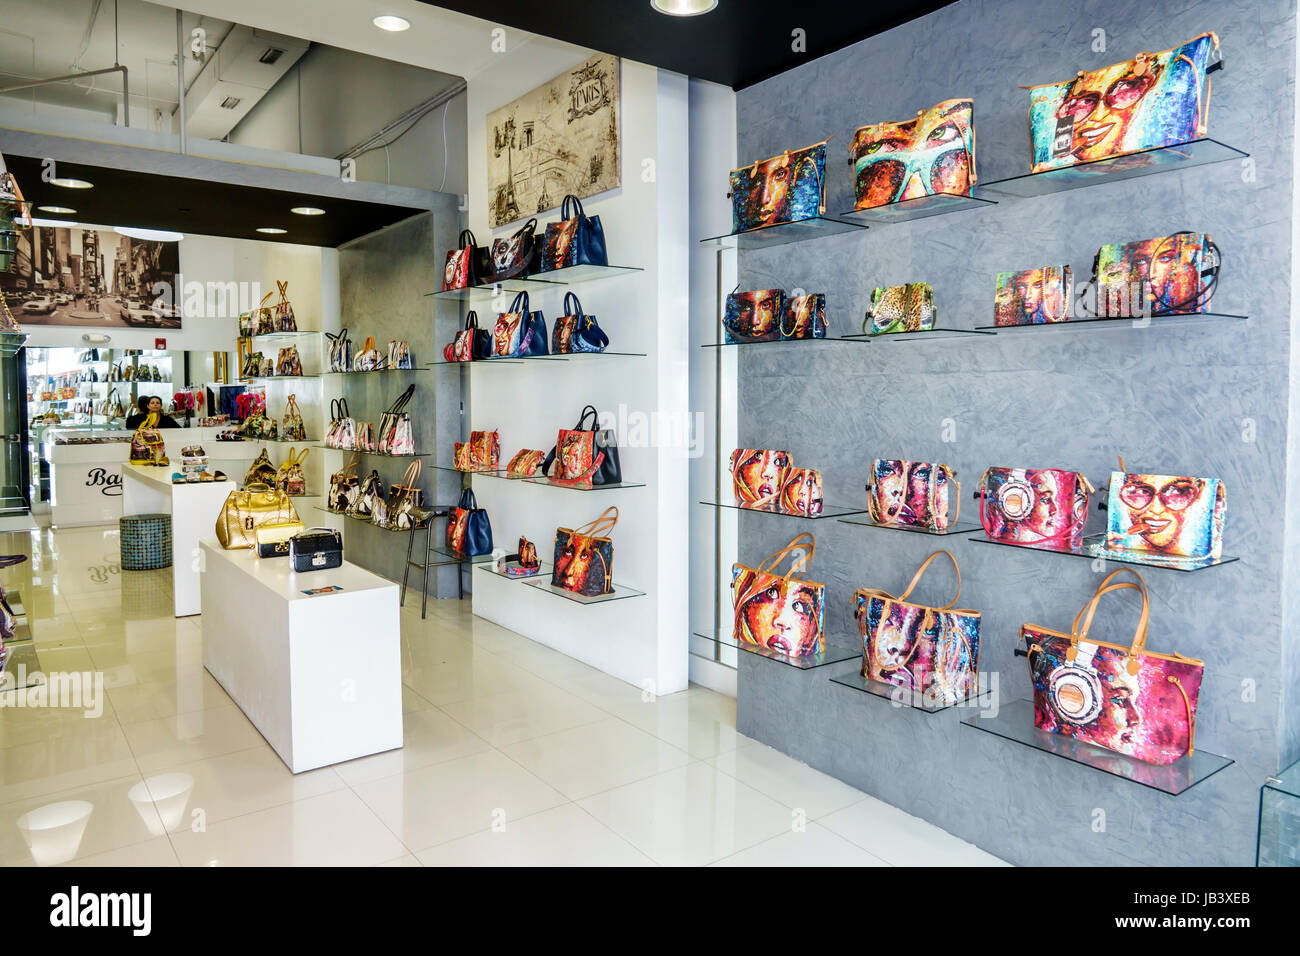 Miami Beach Florida Lincoln Road pedestrian mall store shopping Bagghy Miami  designer handbags handbag store display 23ef10d9f3b6a